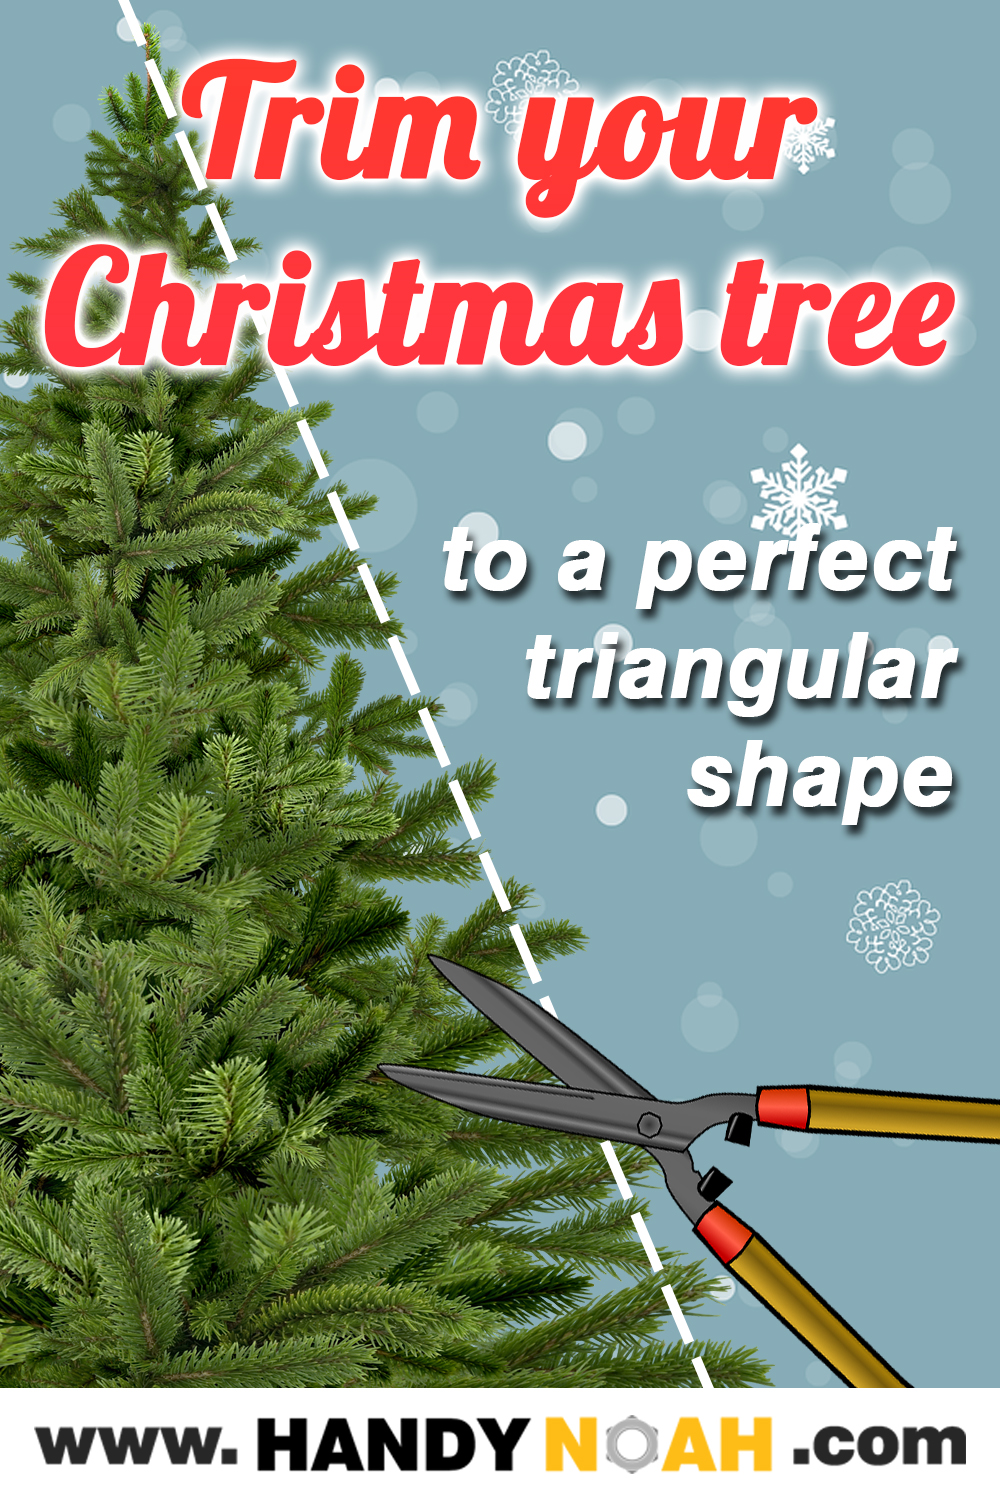 Easy tutorial to shape or trim your Christmas tree to a perfect triangular shape using households tools and items.